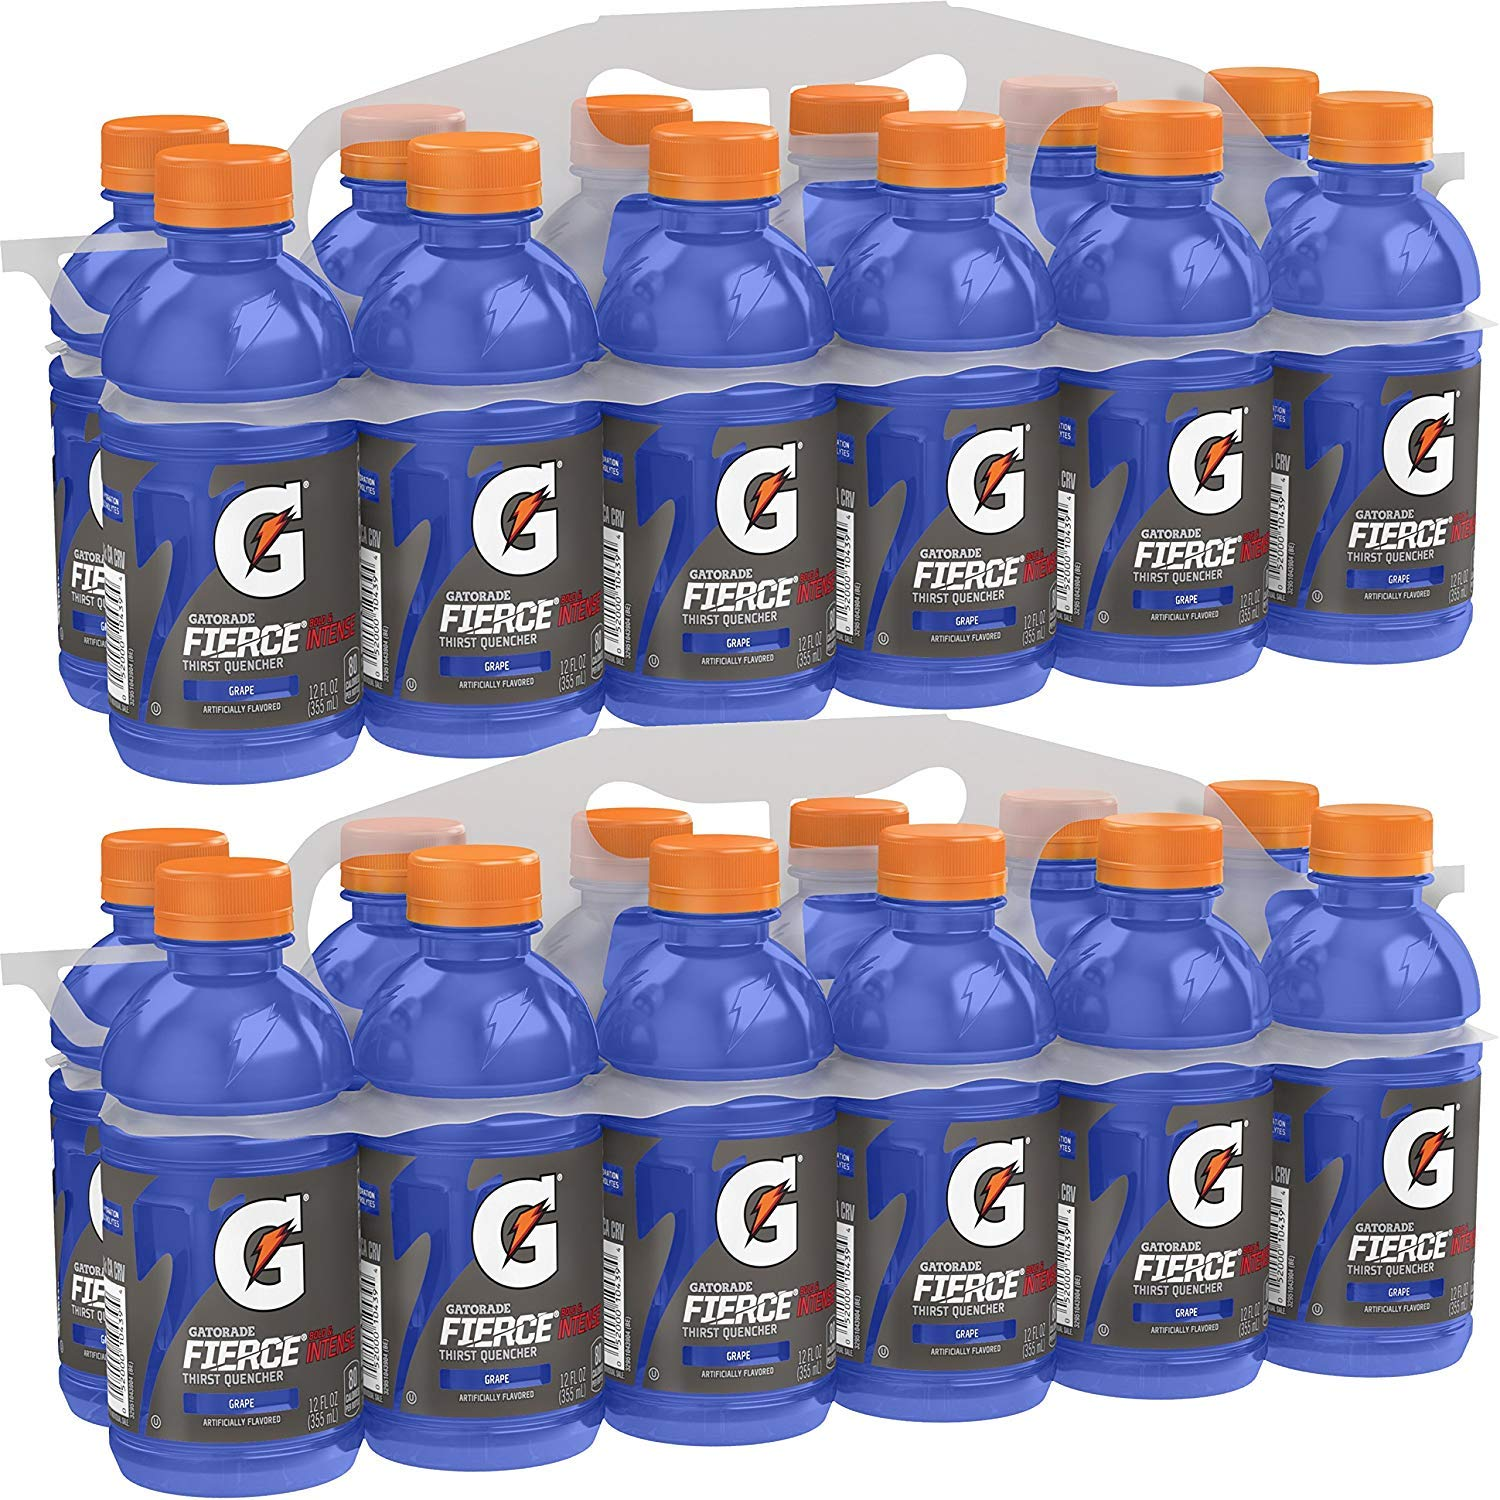 Gatorade Fierce Thirst Quencher, Grape, 12 Ounce Bottles (Pack of 24)